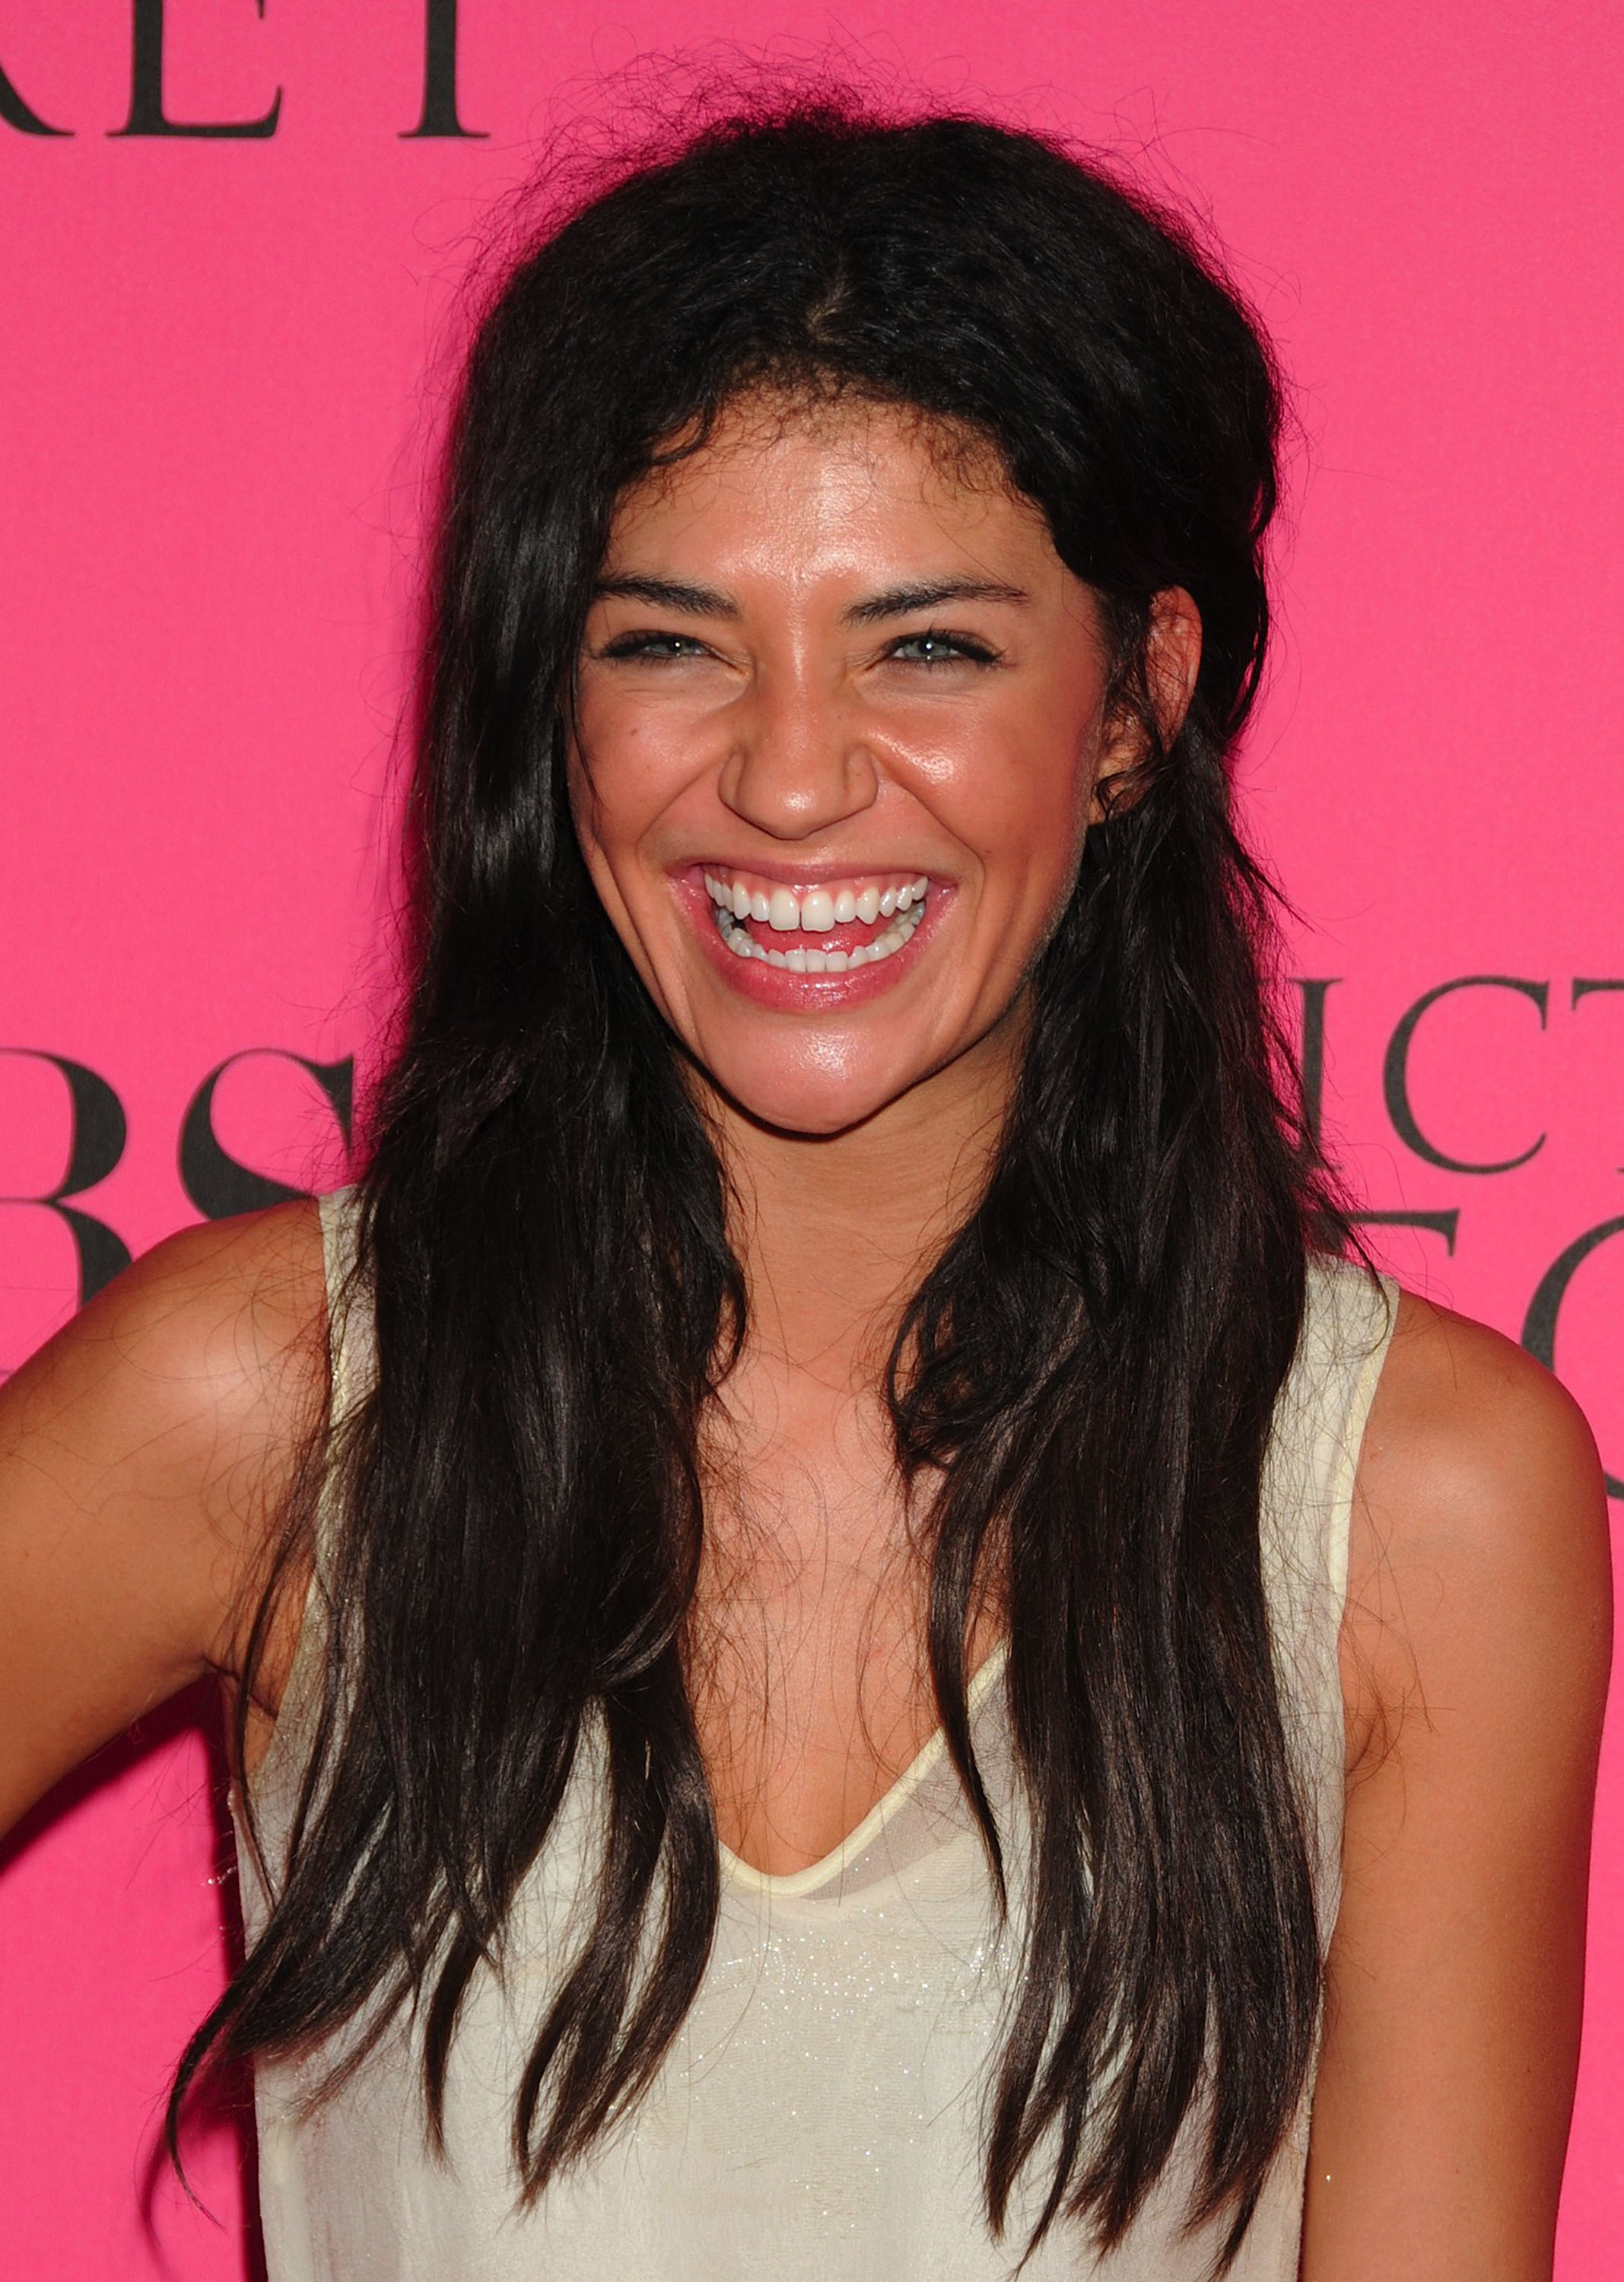 45703_Celebutopia-Jessica_Szohr_arrives_at_the_2008_Victoria9s_Secret_Fashion_Show-01_122_1118lo.JPG